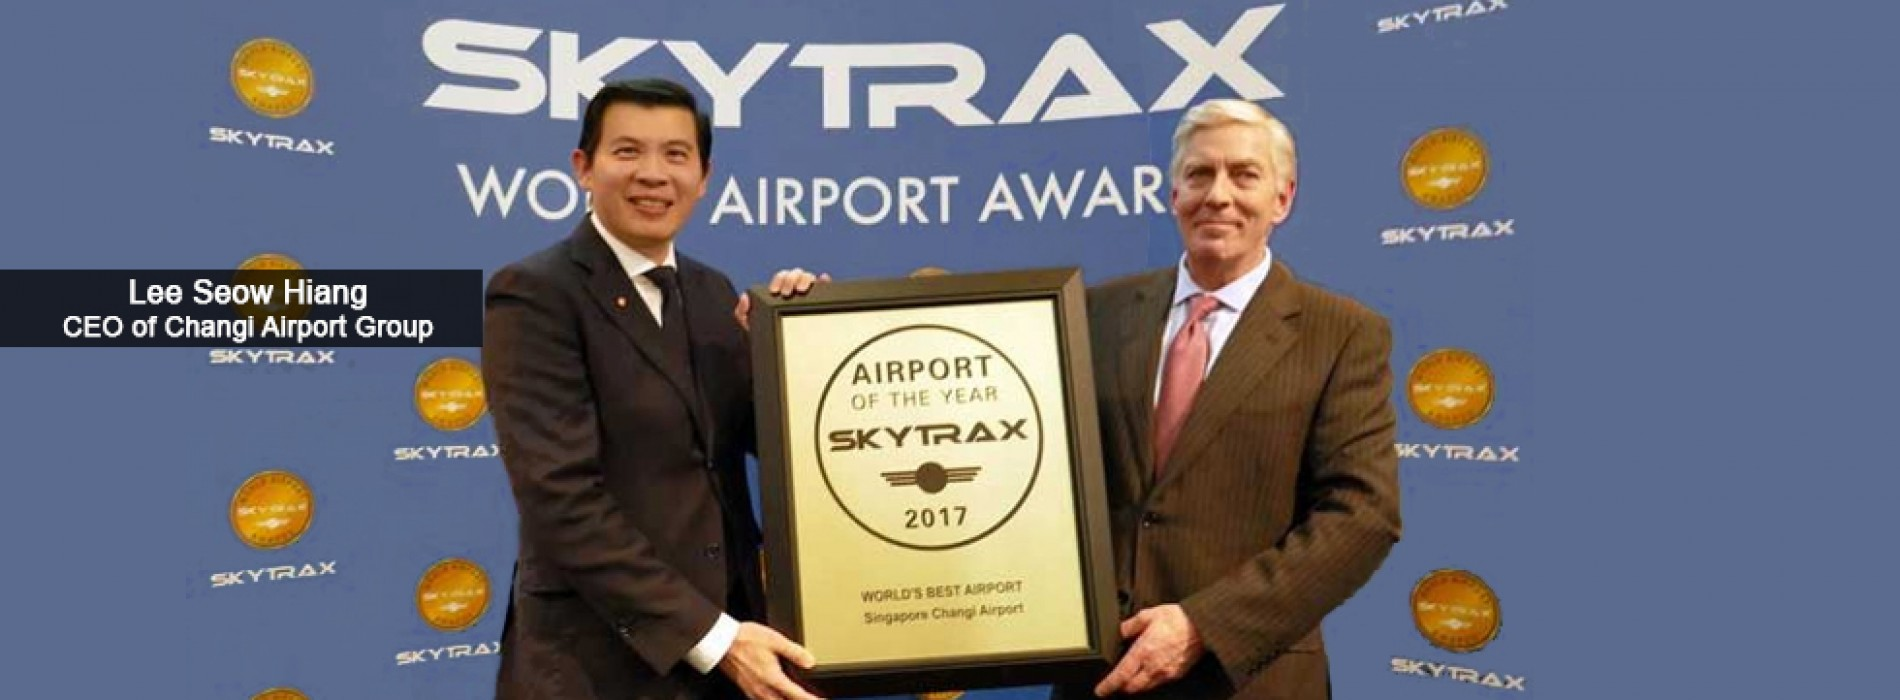 Changi Airport is named the World's Best Airport for the fifth consecutive year